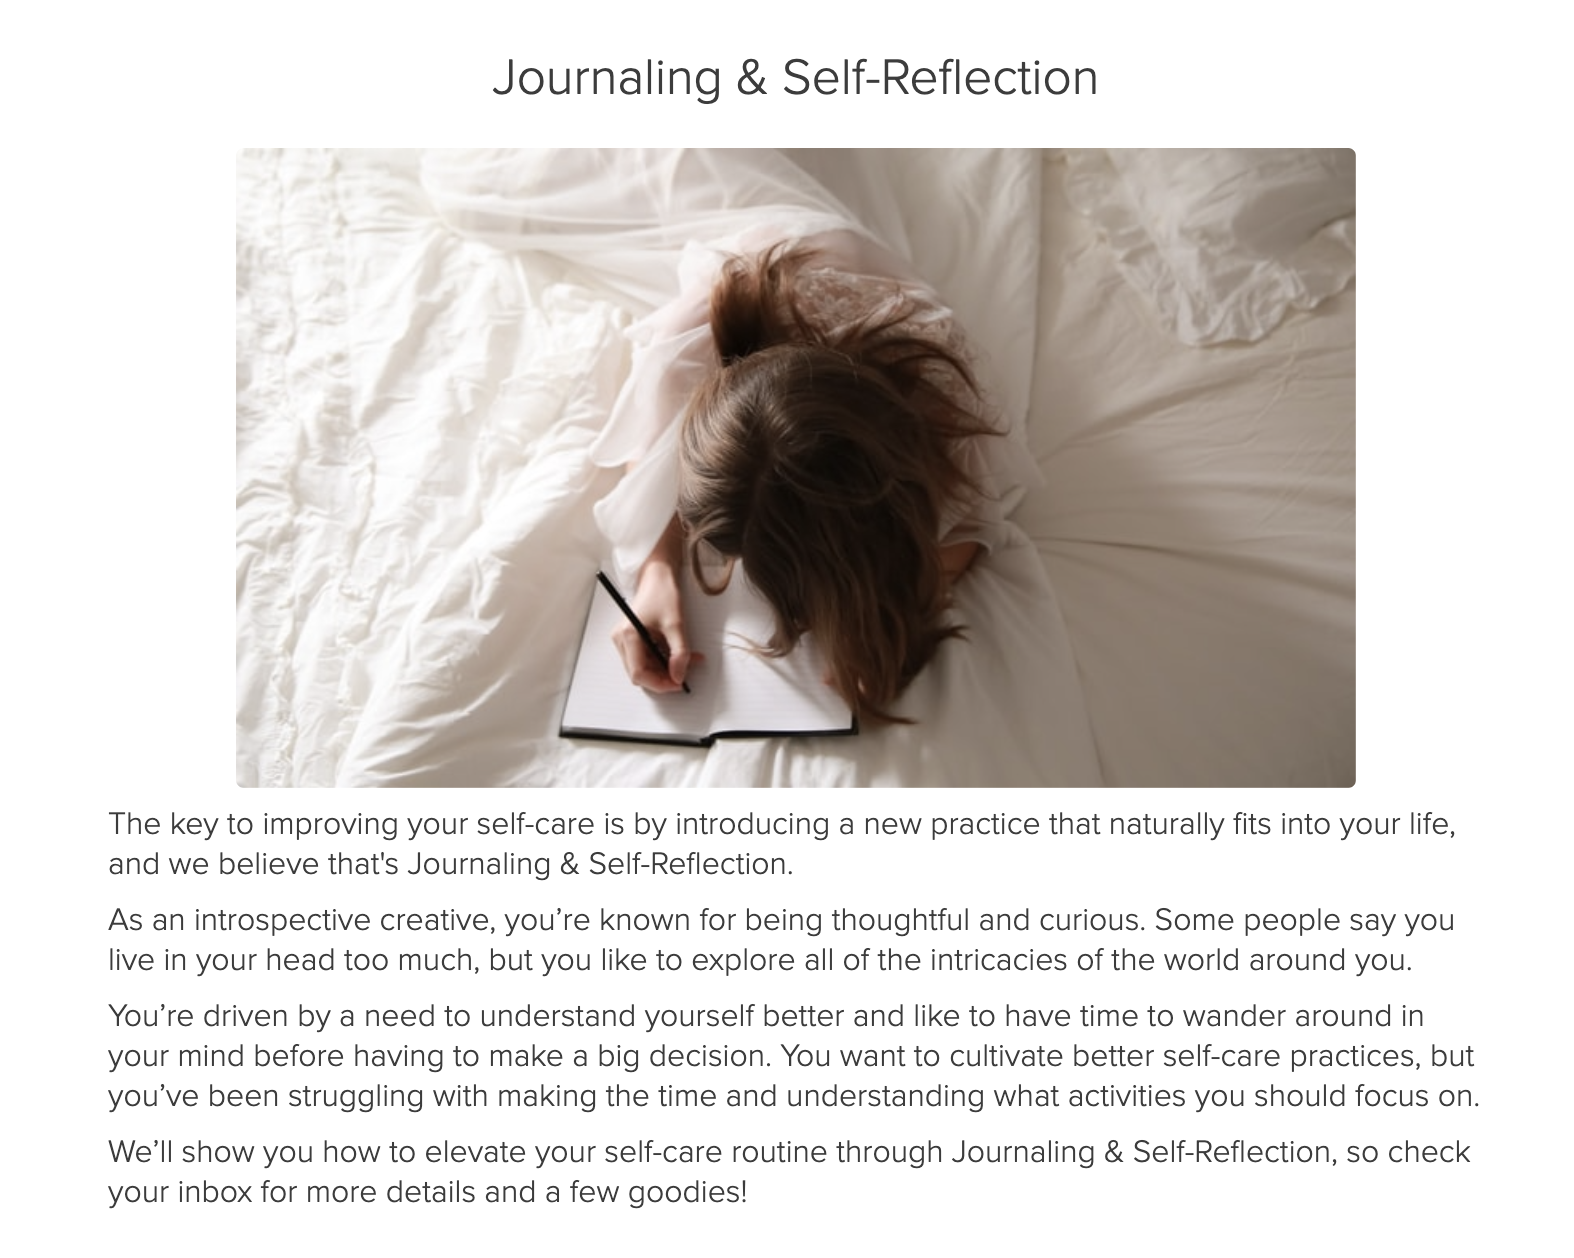 journaling and self-reflection self-care quiz results